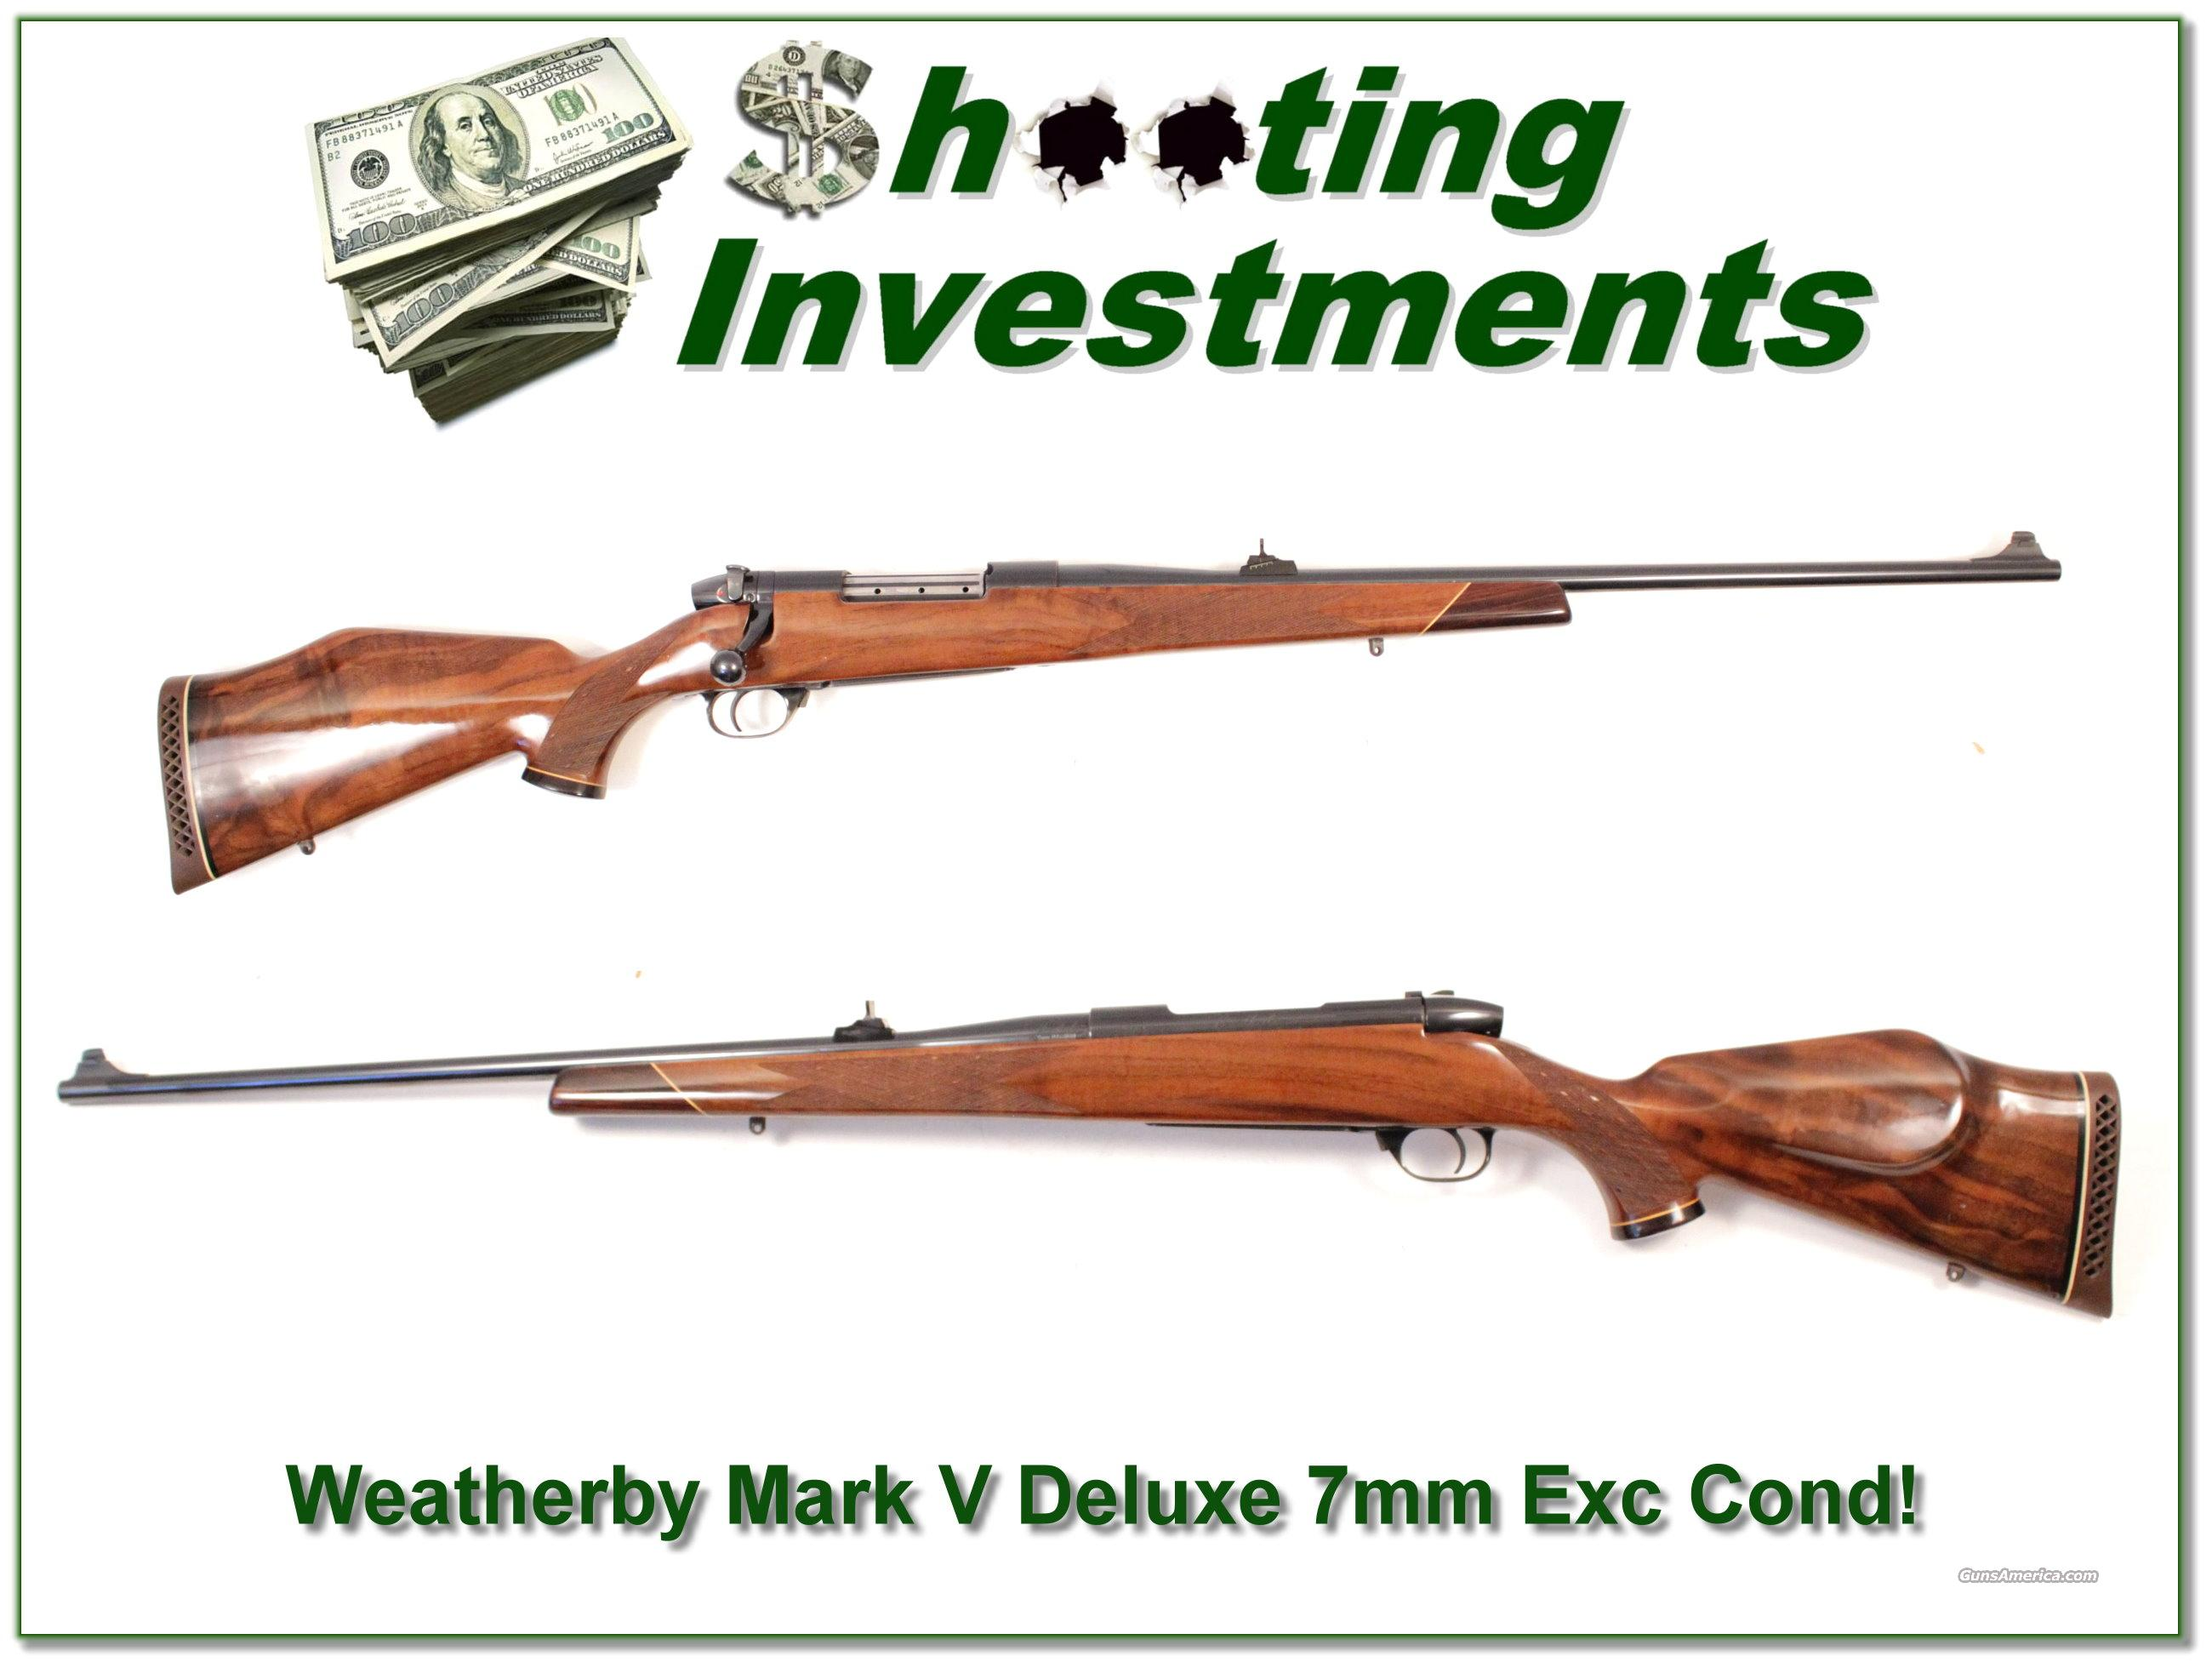 Weatherby Mark V Deluxe 7mm Wthy Mag Exc Cond!  Guns > Rifles > Weatherby Rifles > Sporting